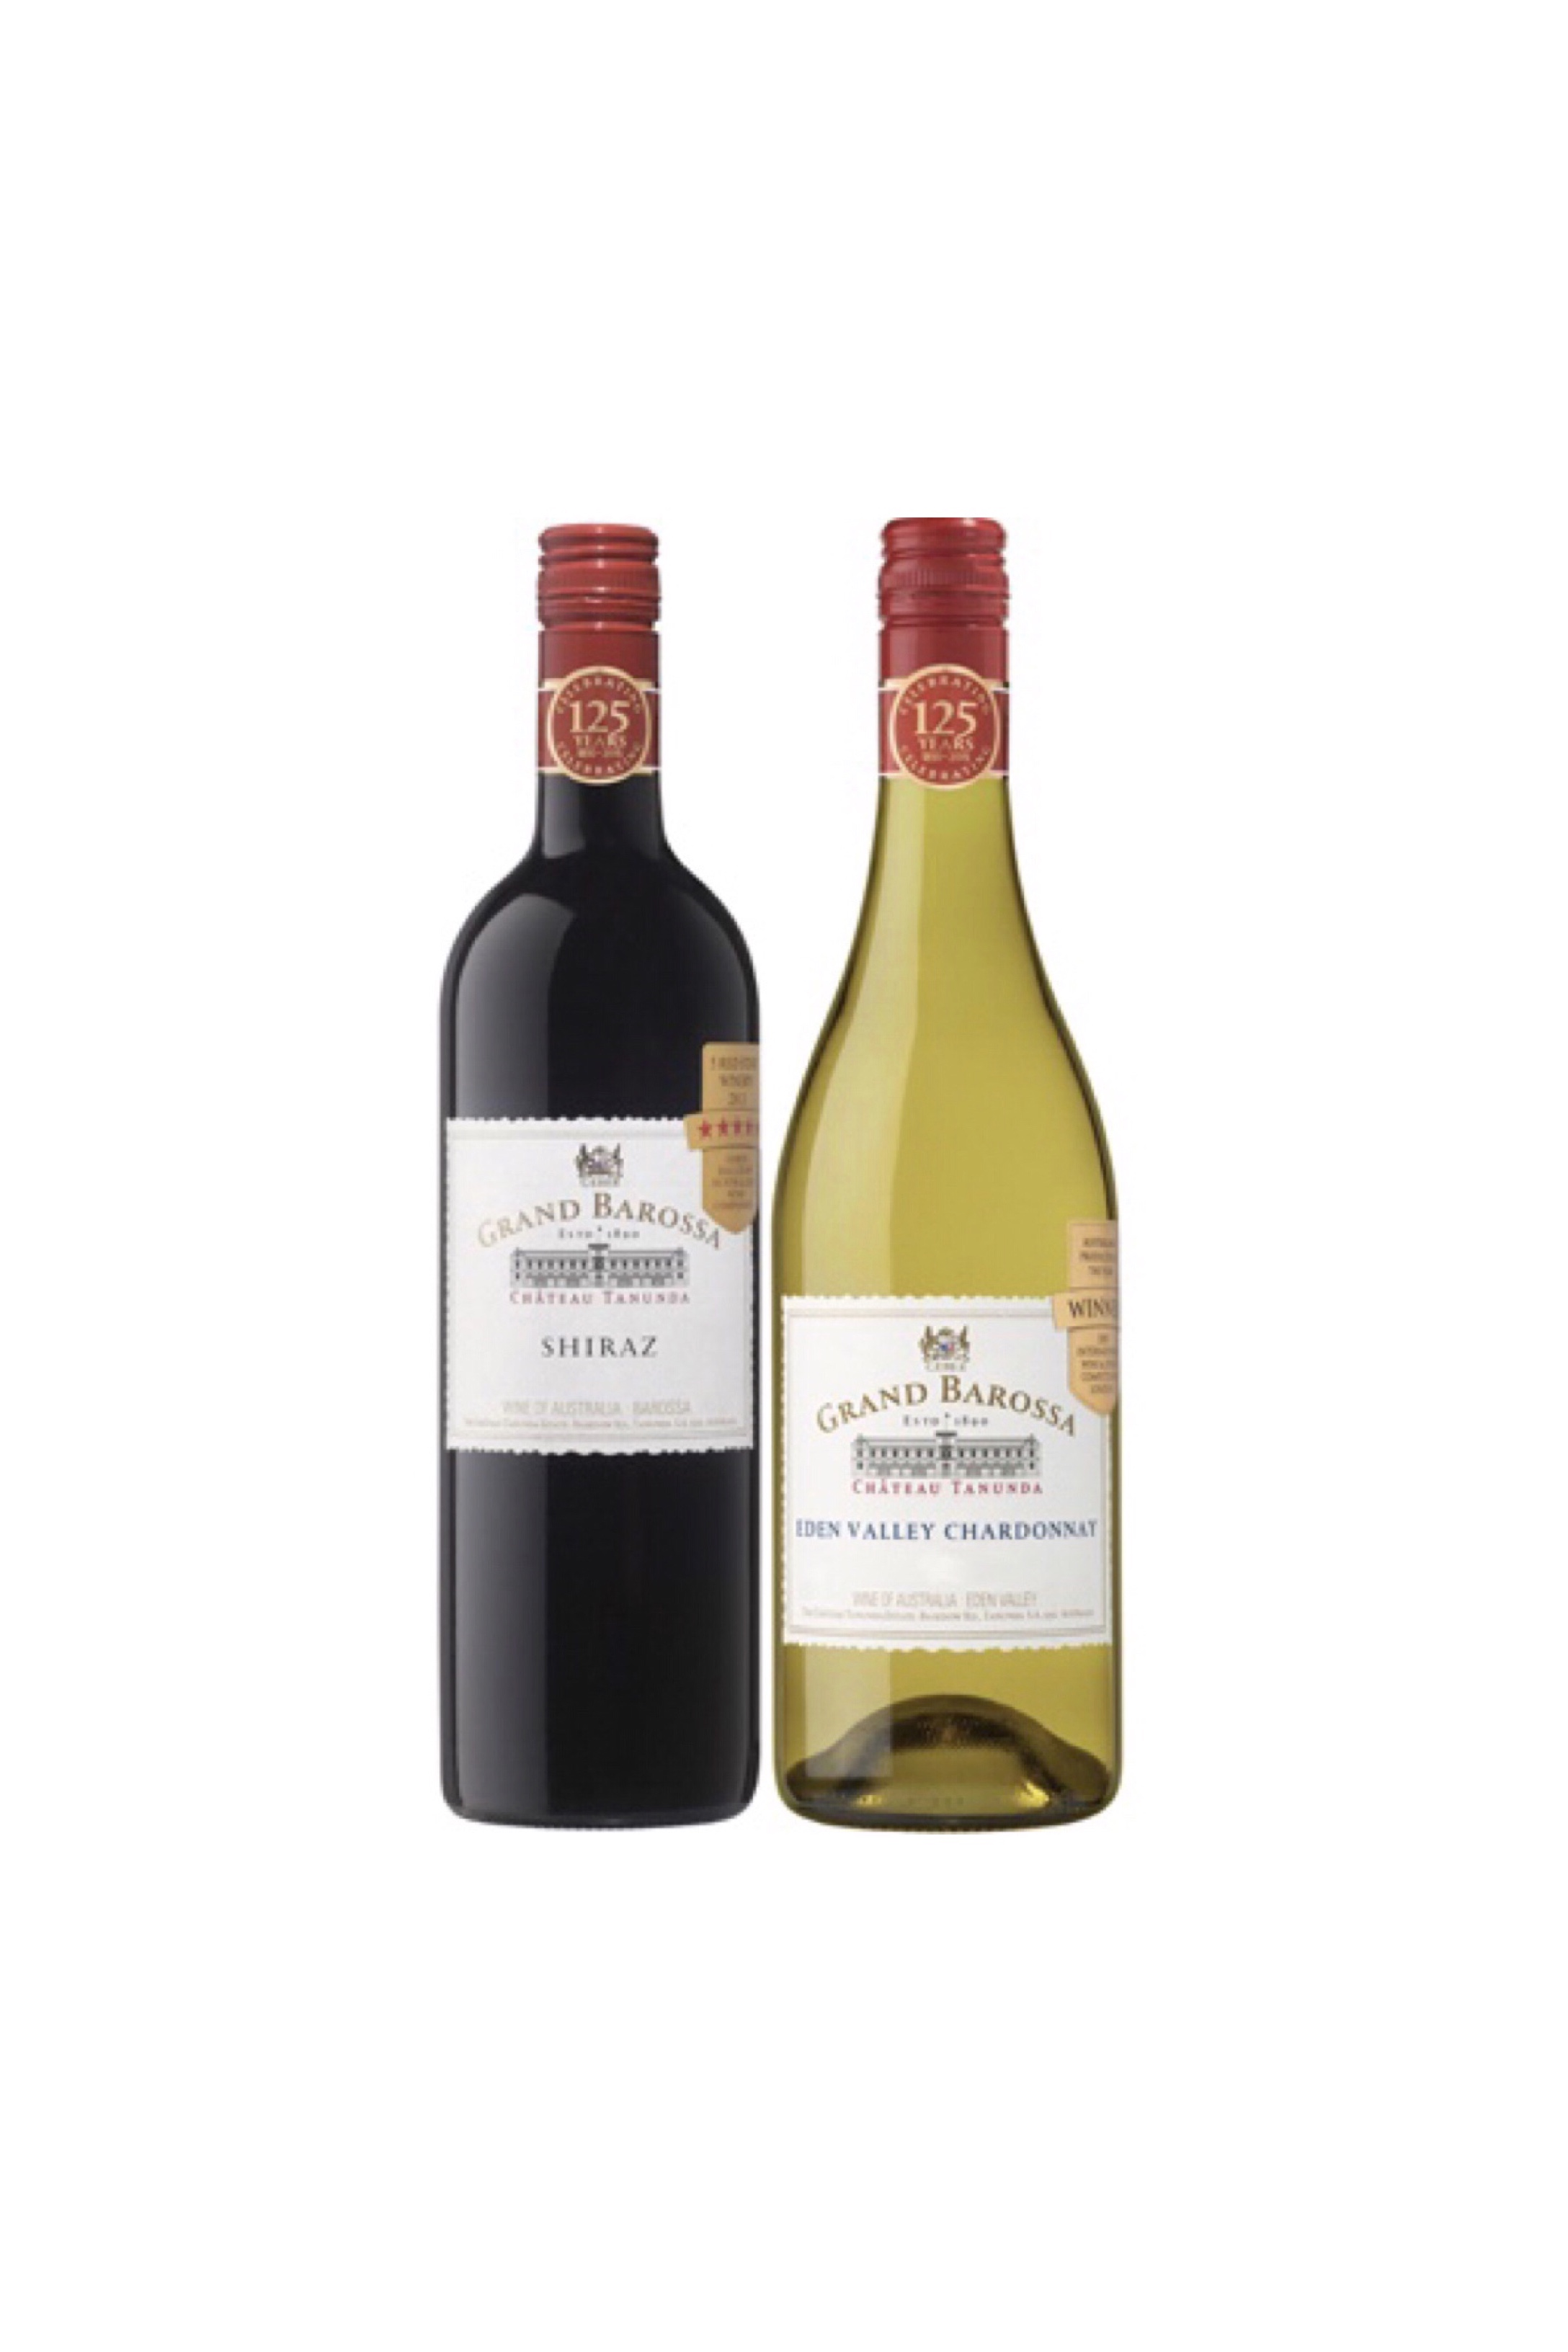 Award Winning Grand Barossa Shiraz And Chardonnay Bundle Plus One FREE Bottle Of Wine Worth $48